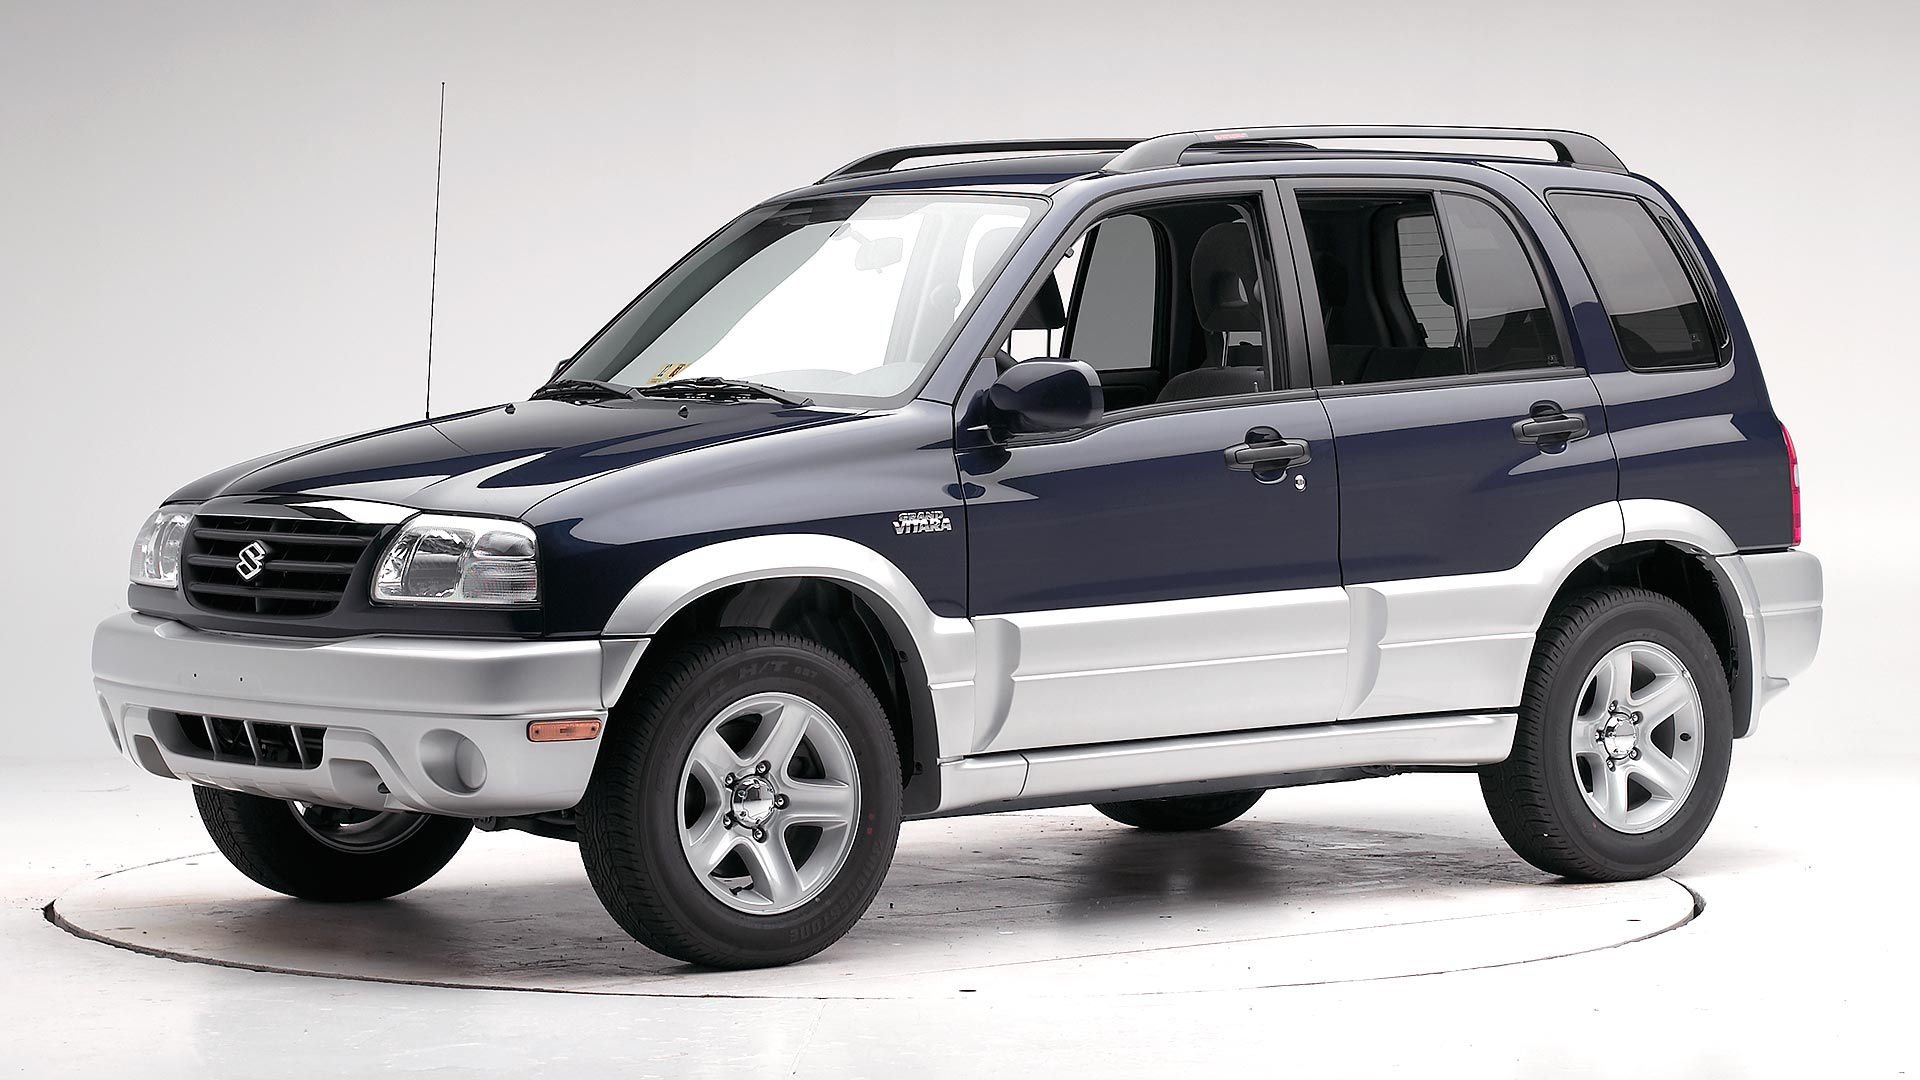 2003 Suzuki Grand Vitara 4-door SUV